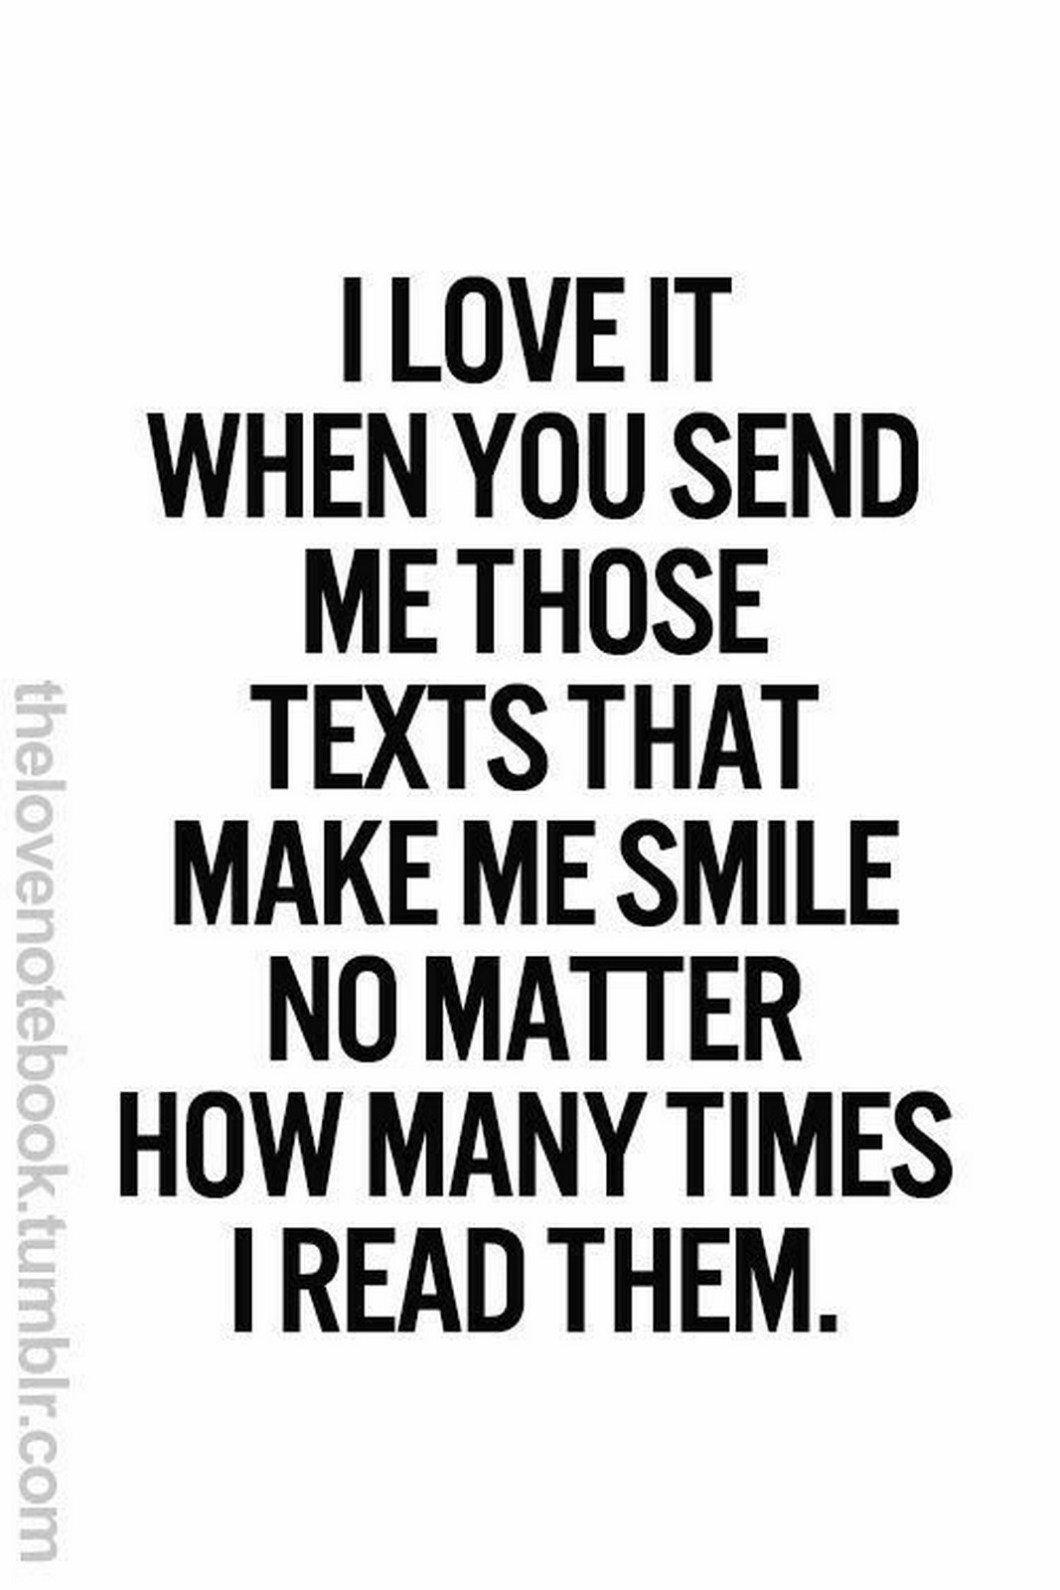 """55 Romantic Quotes - """"I love it when you send me those texts that make me smile no matter how many times I read them."""""""